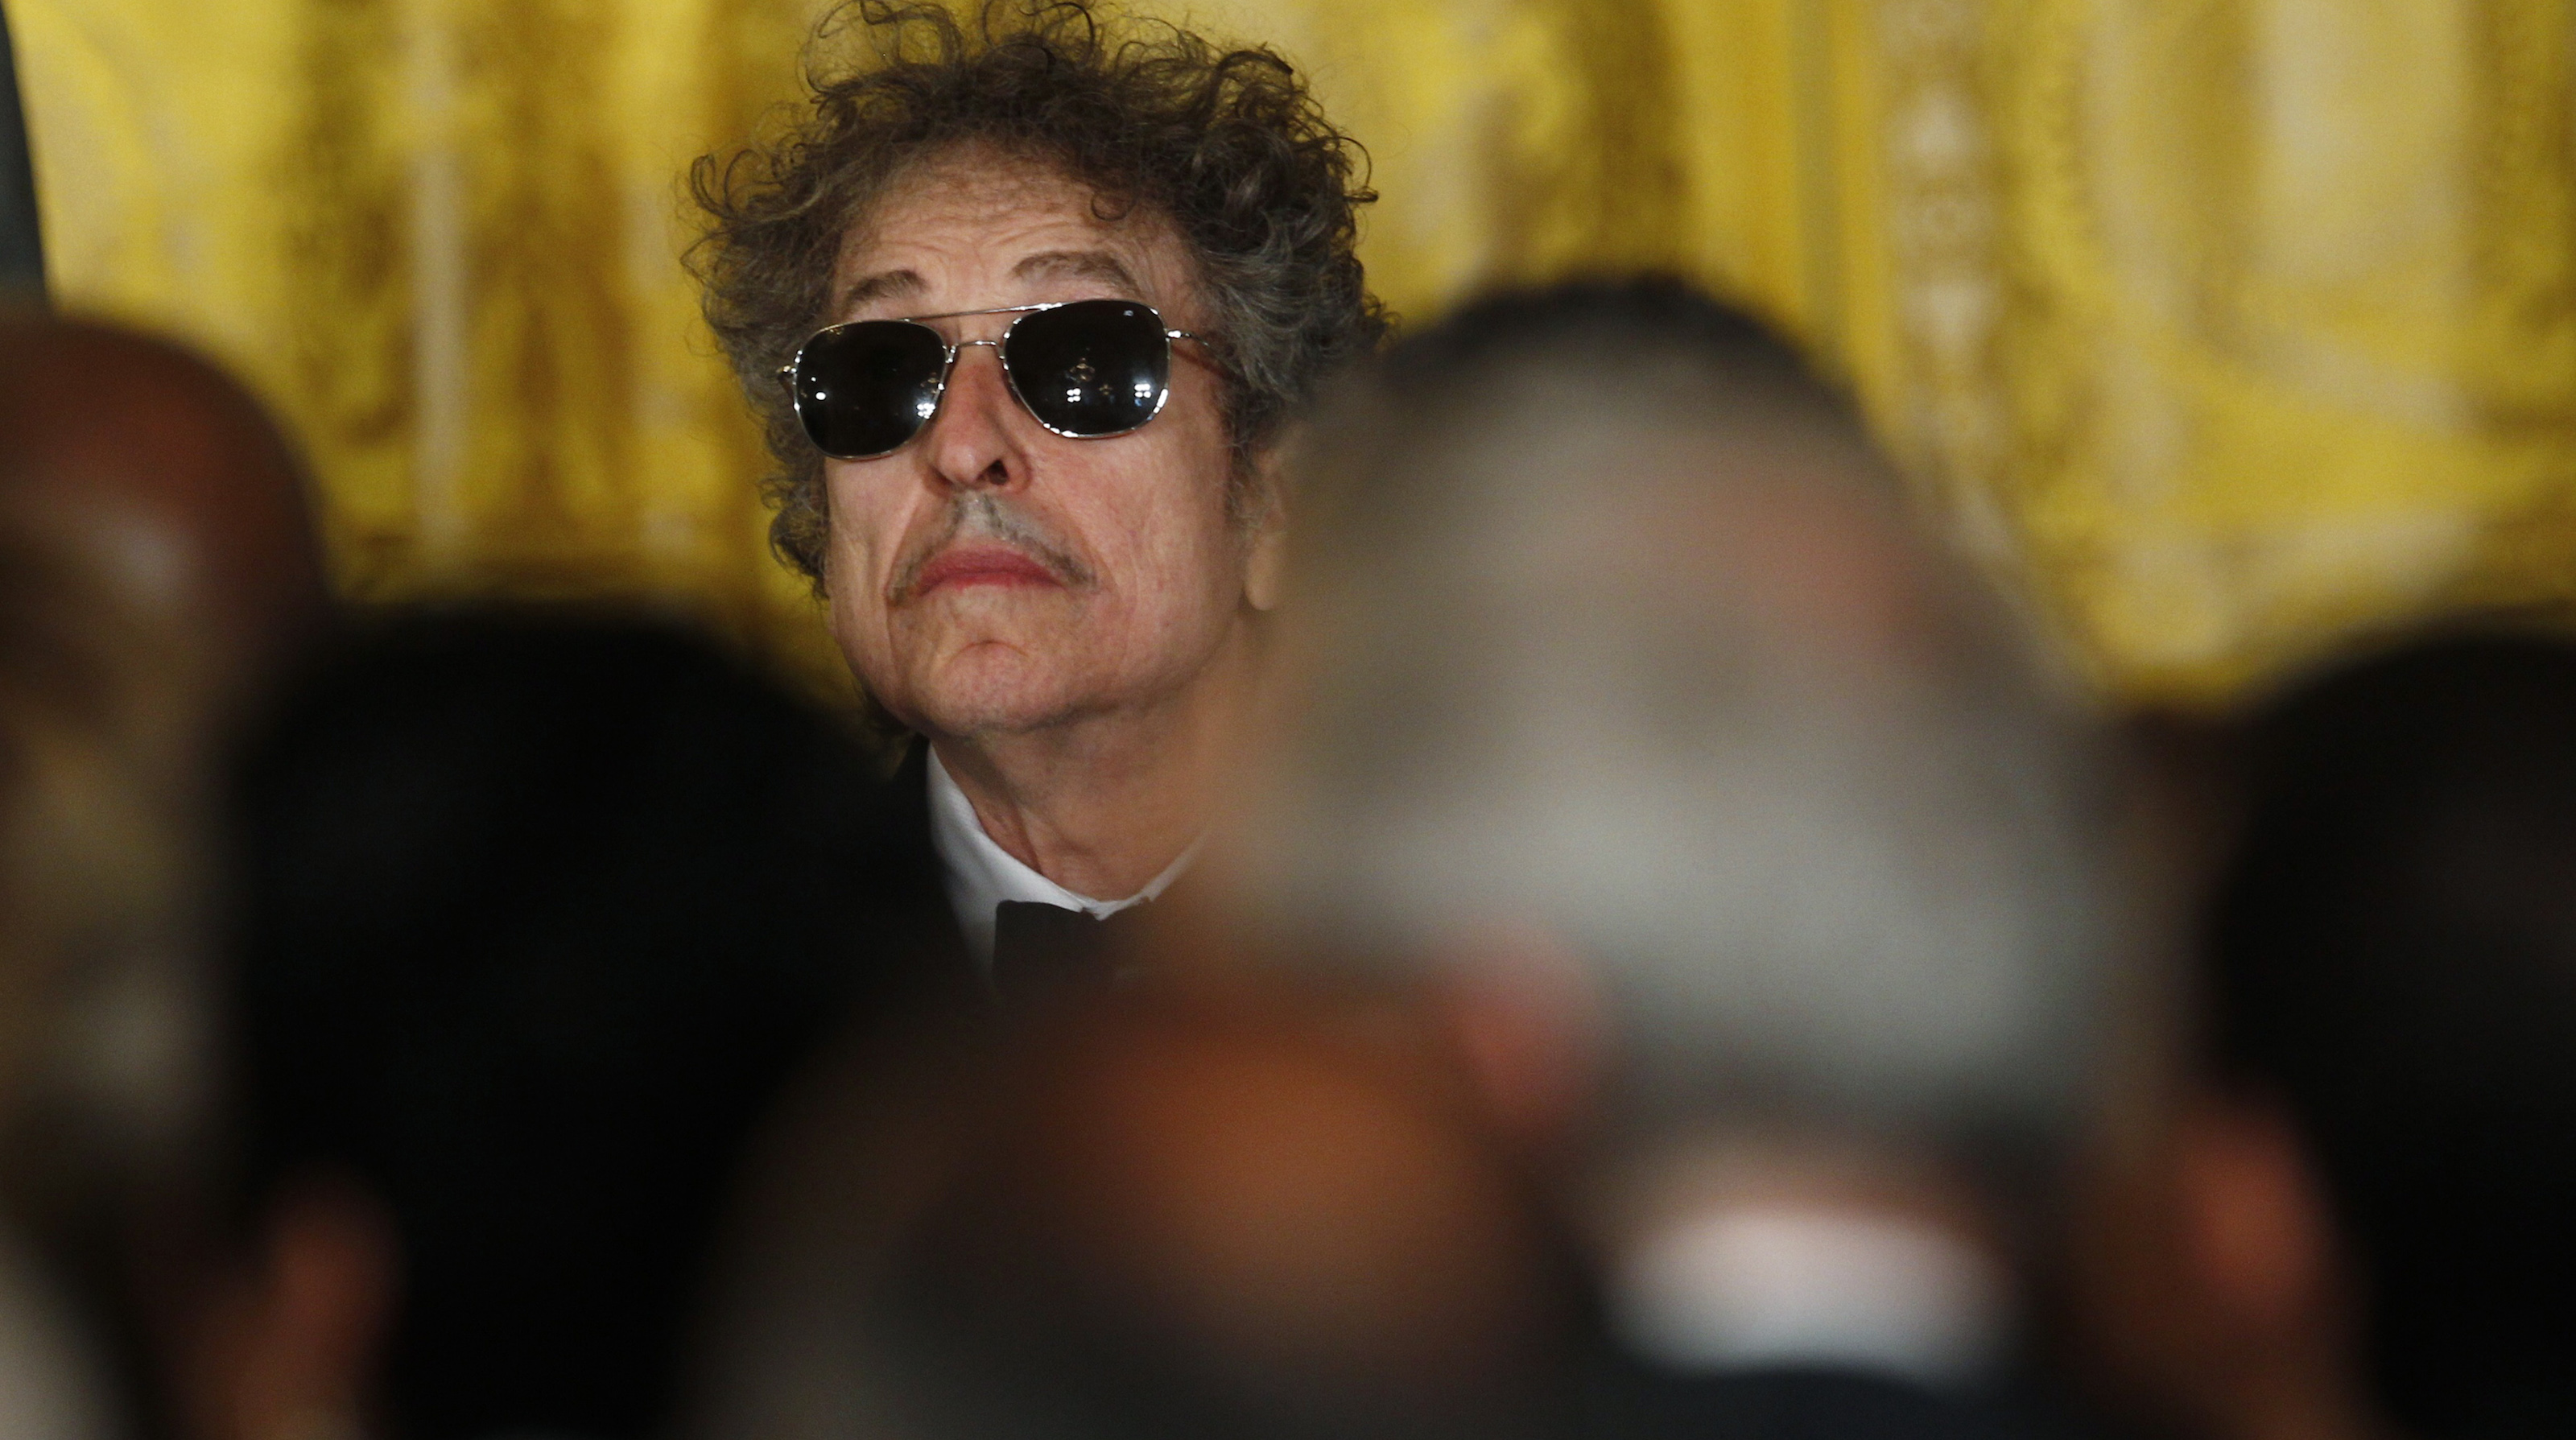 Musician Bob Dylan (C) waits prior to receiving a Presidential Medal of Freedom in the East Room of the White House in Washington, May 29, 2012. REUTERS/Kevin Lamarque (UNITED STATES  - Tags: POLITICS ENTERTAINMENT PROFILE) - RTR32T2F